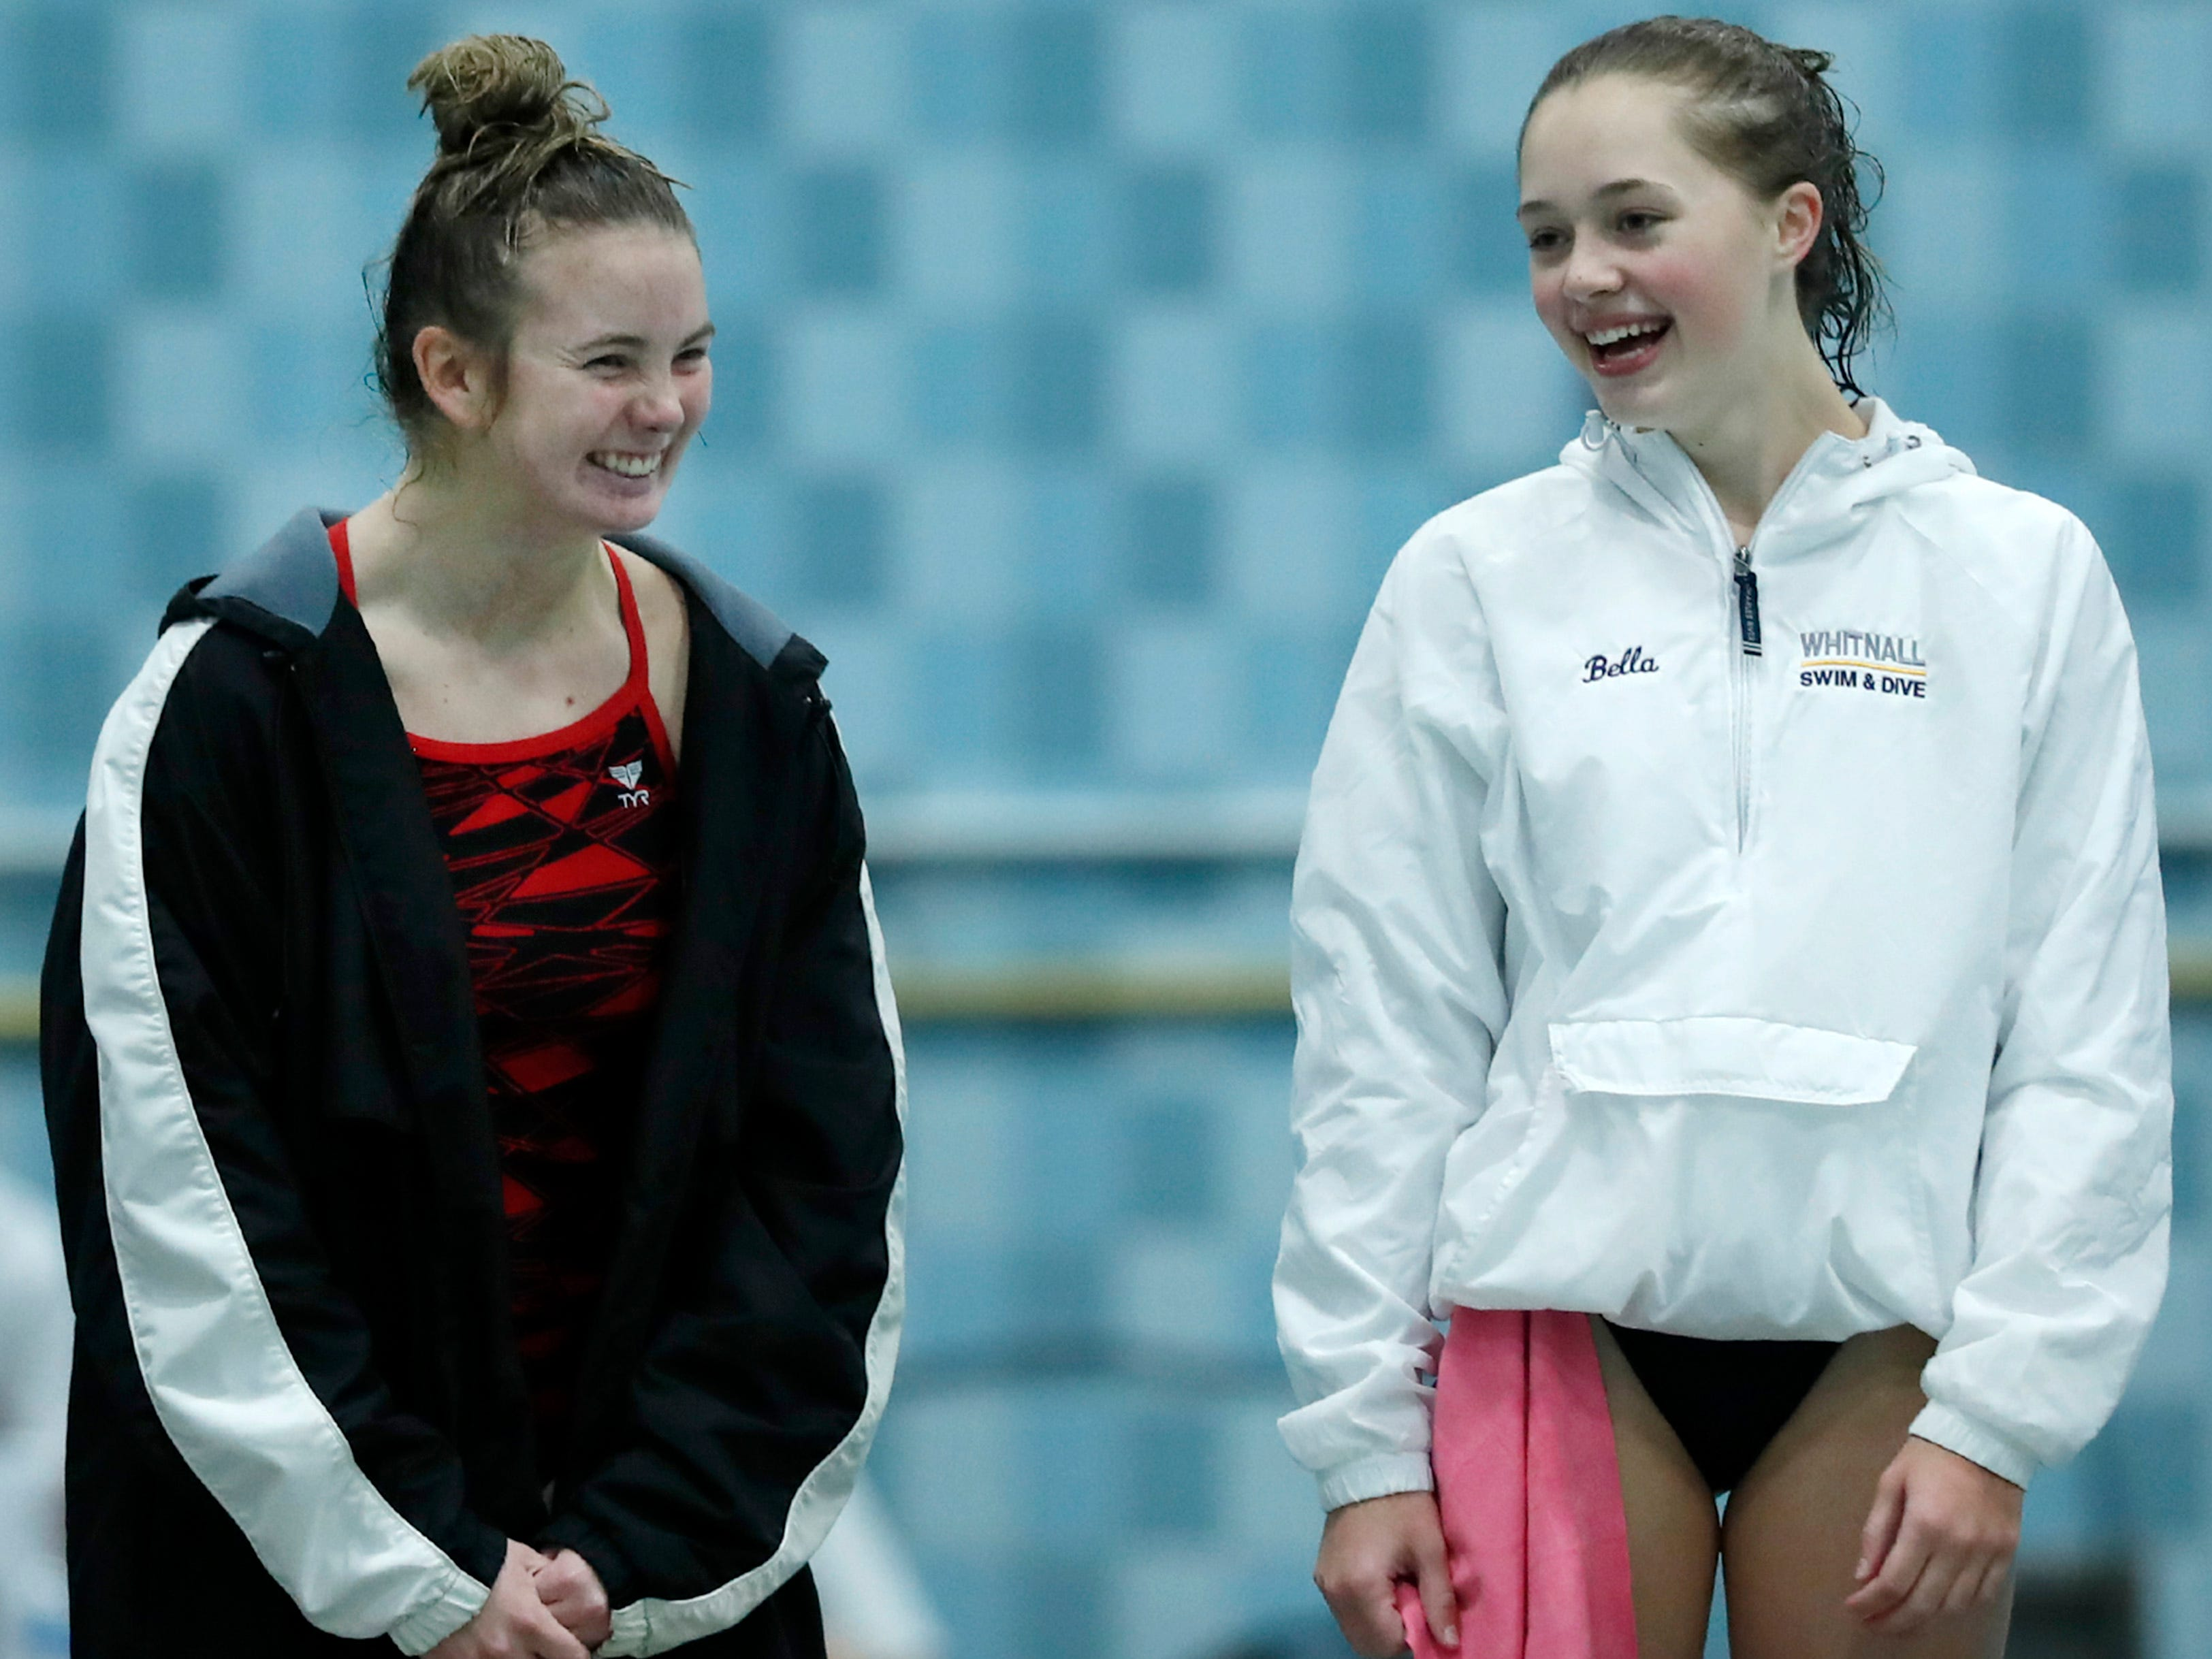 Seymour's Erin Schuh (left) laughs with Whitnall's Bella Smith after Schuh took third place in diving during WIAA Division 2 State Swimming and Diving Friday, Nov. 9, 2018, at the UW Natatorium in Madison, Wis.